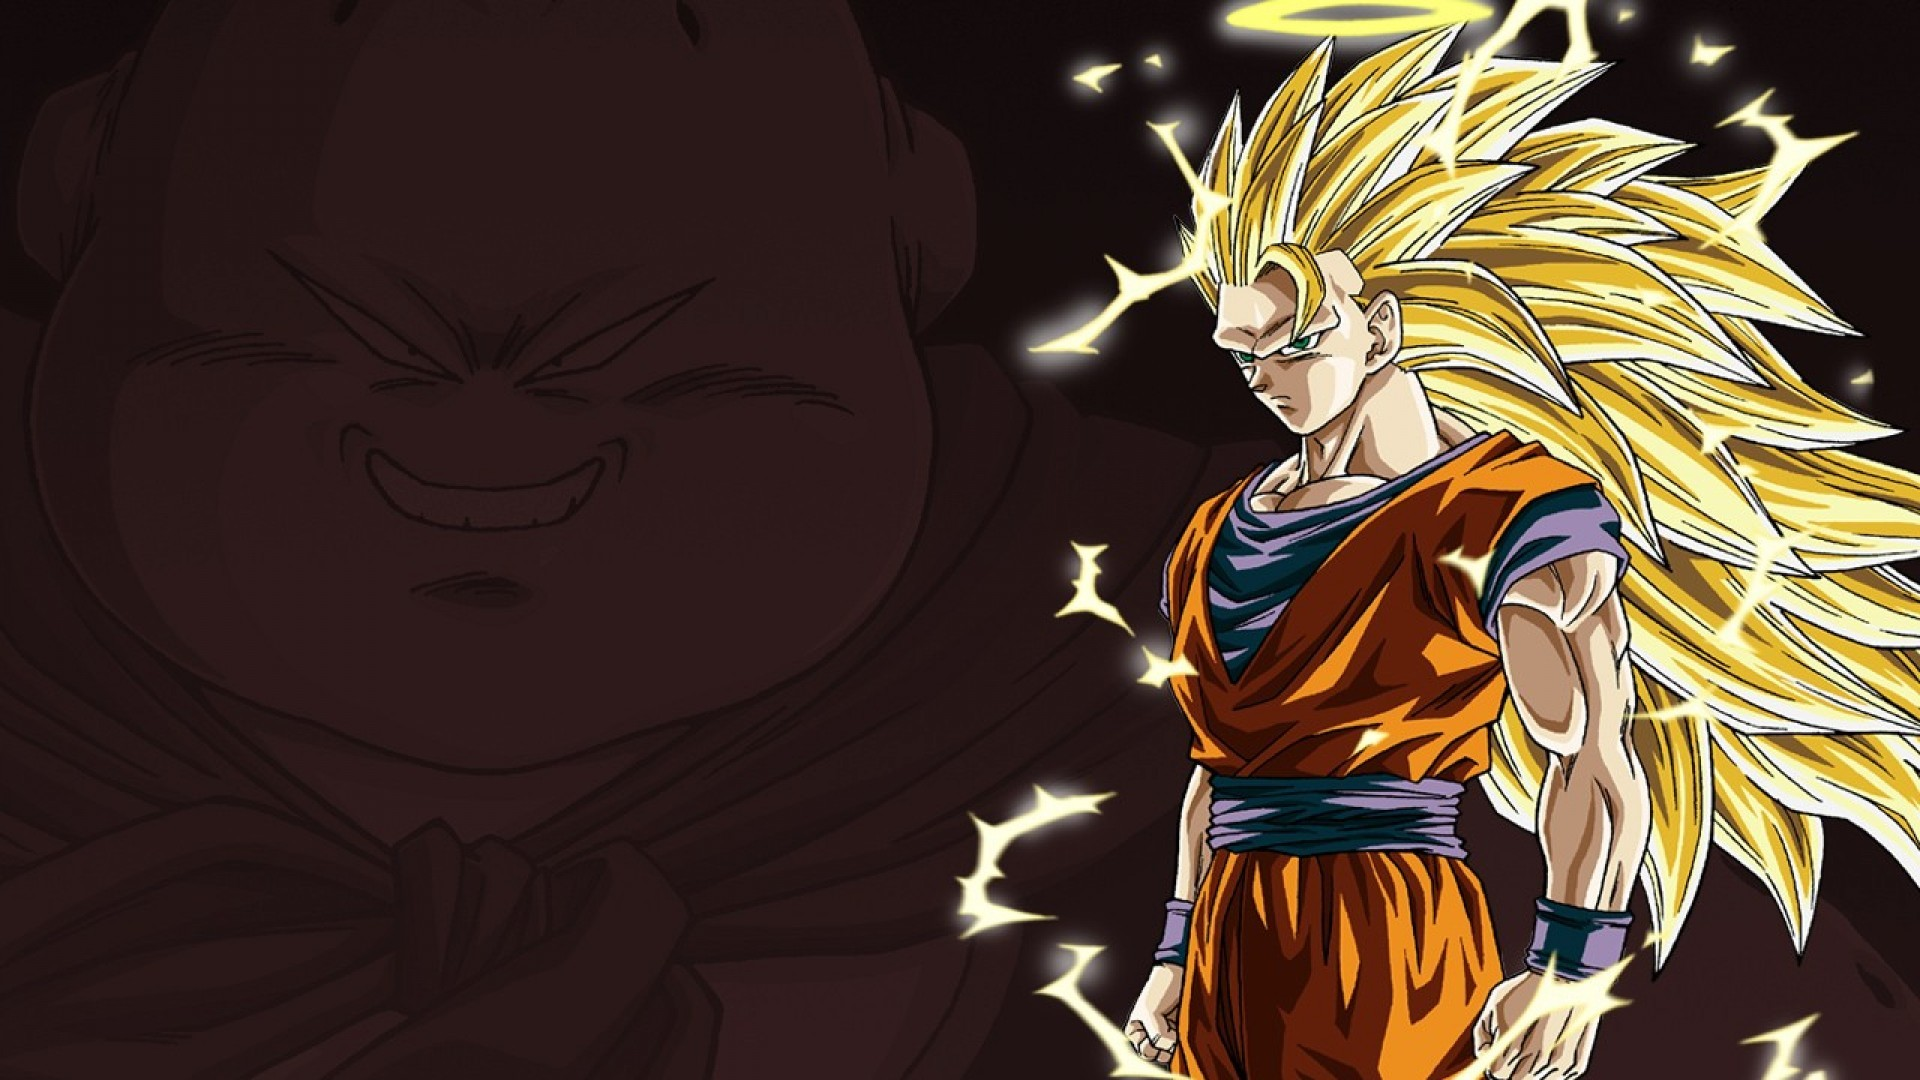 Dragonball Z Wallpaper Collection 1440×900 Dbz Wallpapers (34 Wallpapers) |  Adorable Wallpapers